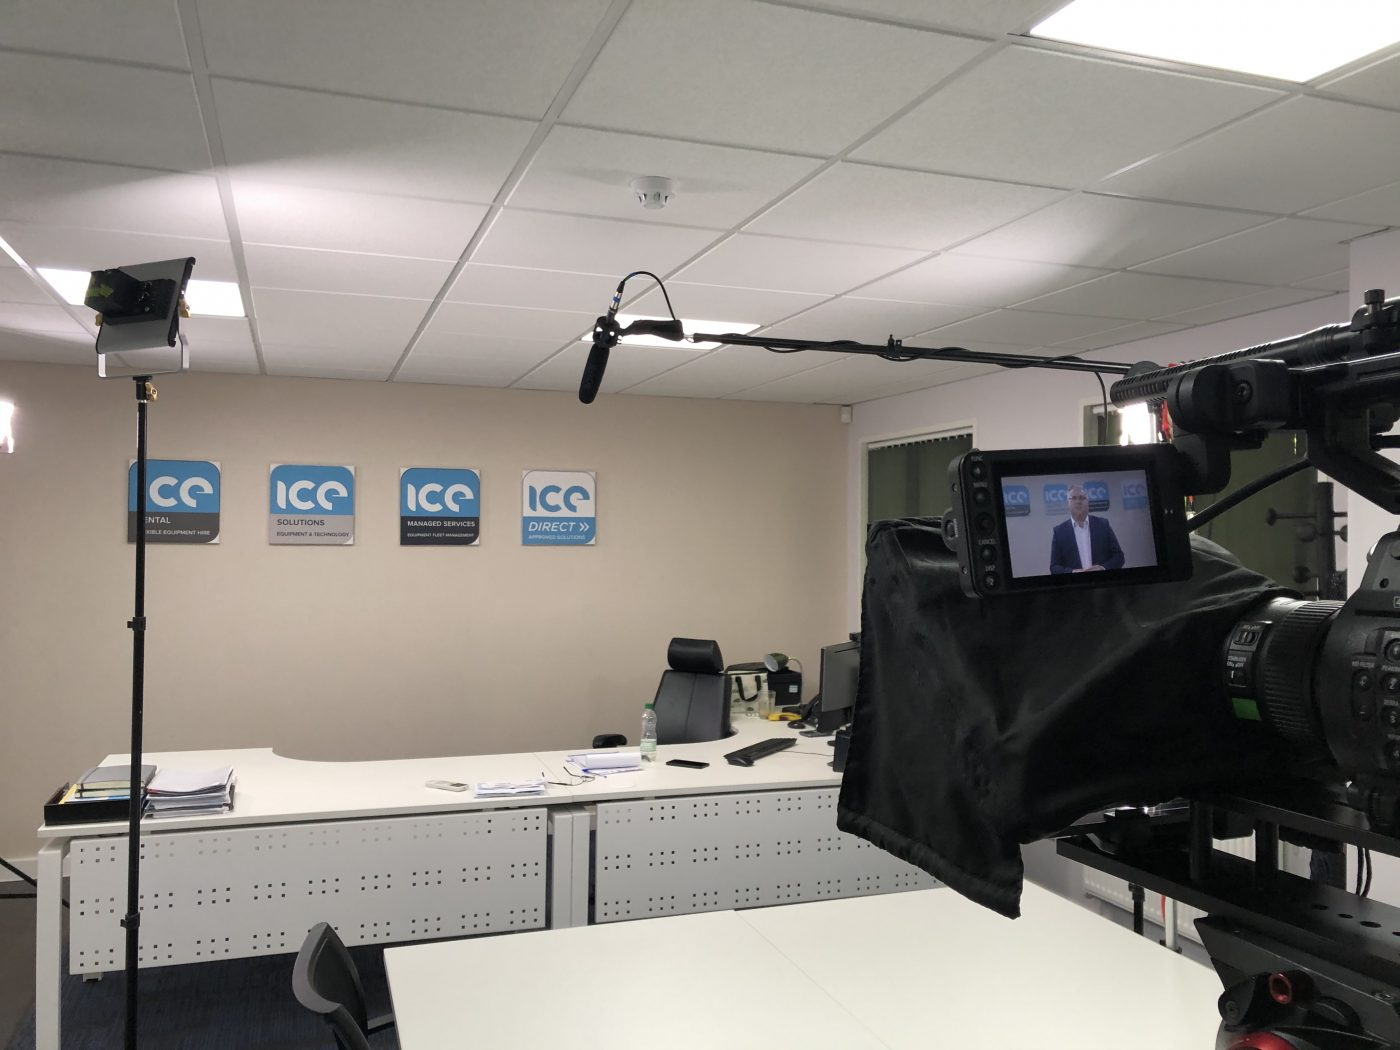 Filming a video presentation for ICE